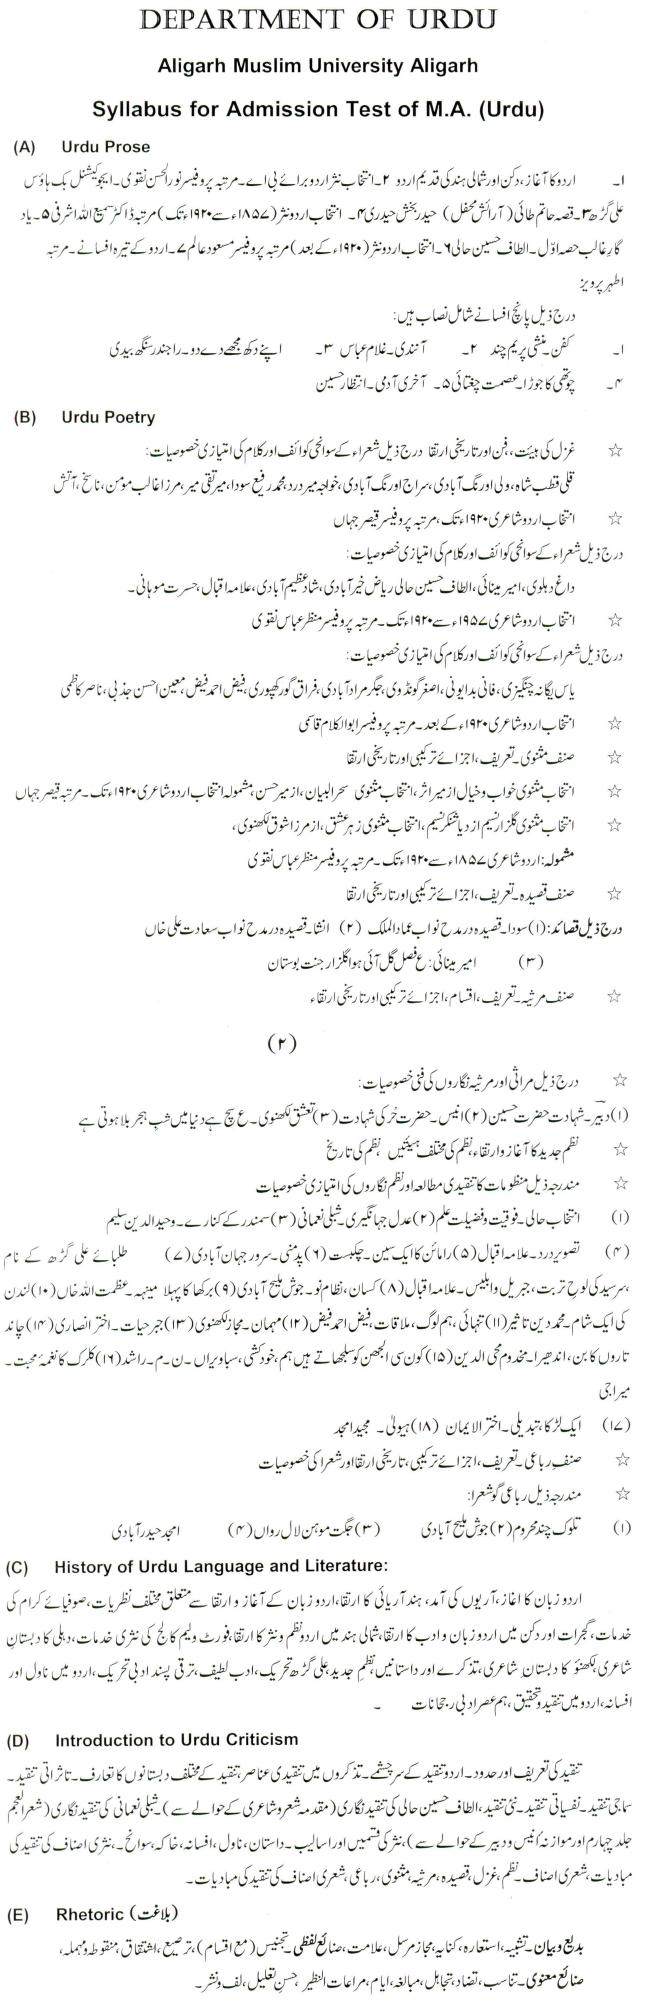 AMU  Syllabus - Arts - M. A. Urdu